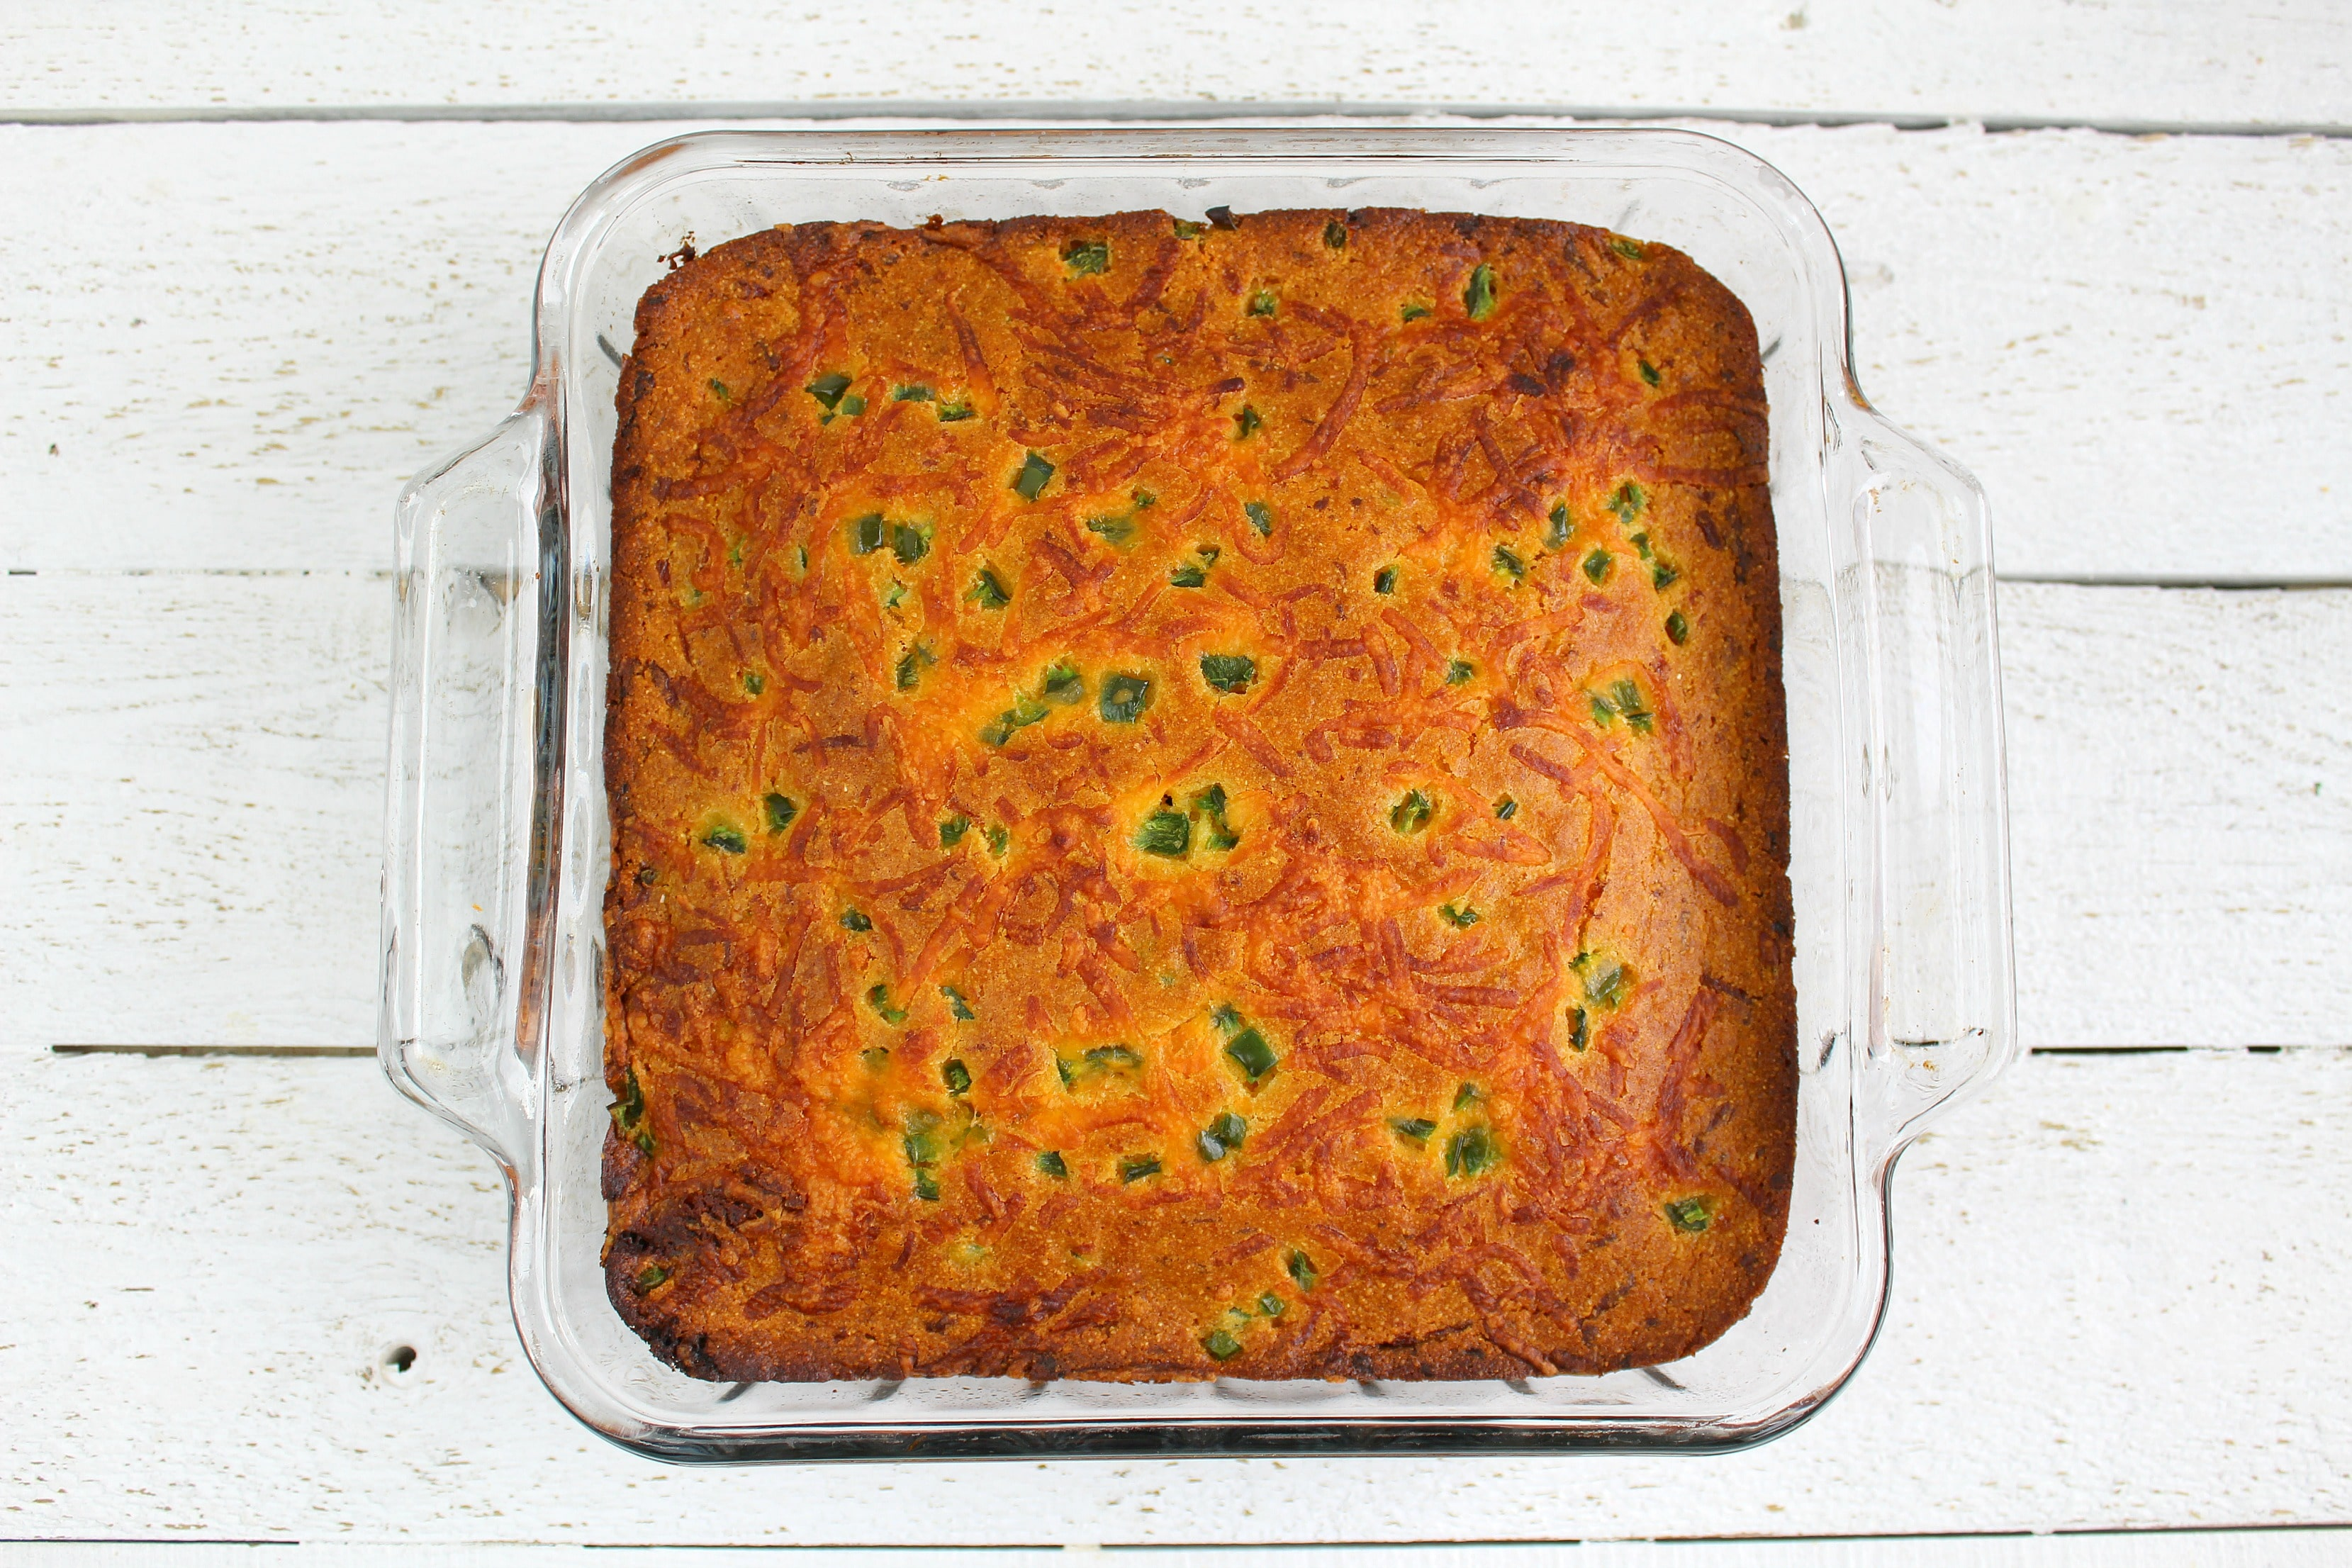 Serve this jalapeno cornbread plain or with honey butter